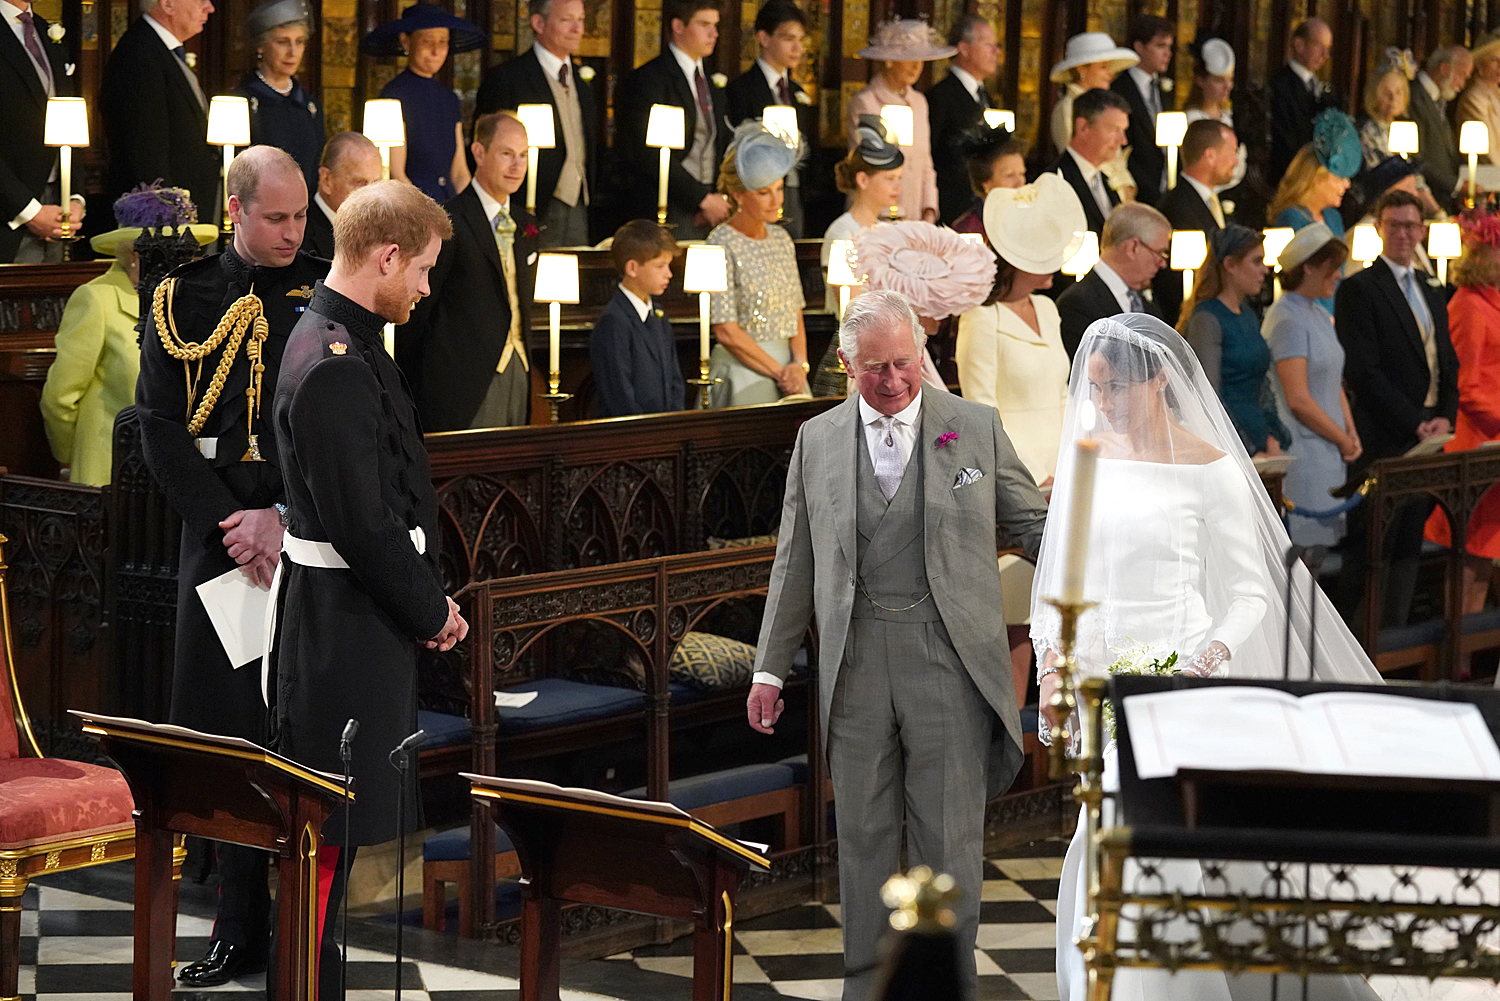 Prince Harry looks at his bride, Meghan Markle, as she arrives accompanied by Prince Charles, Prince of Wales during their wedding